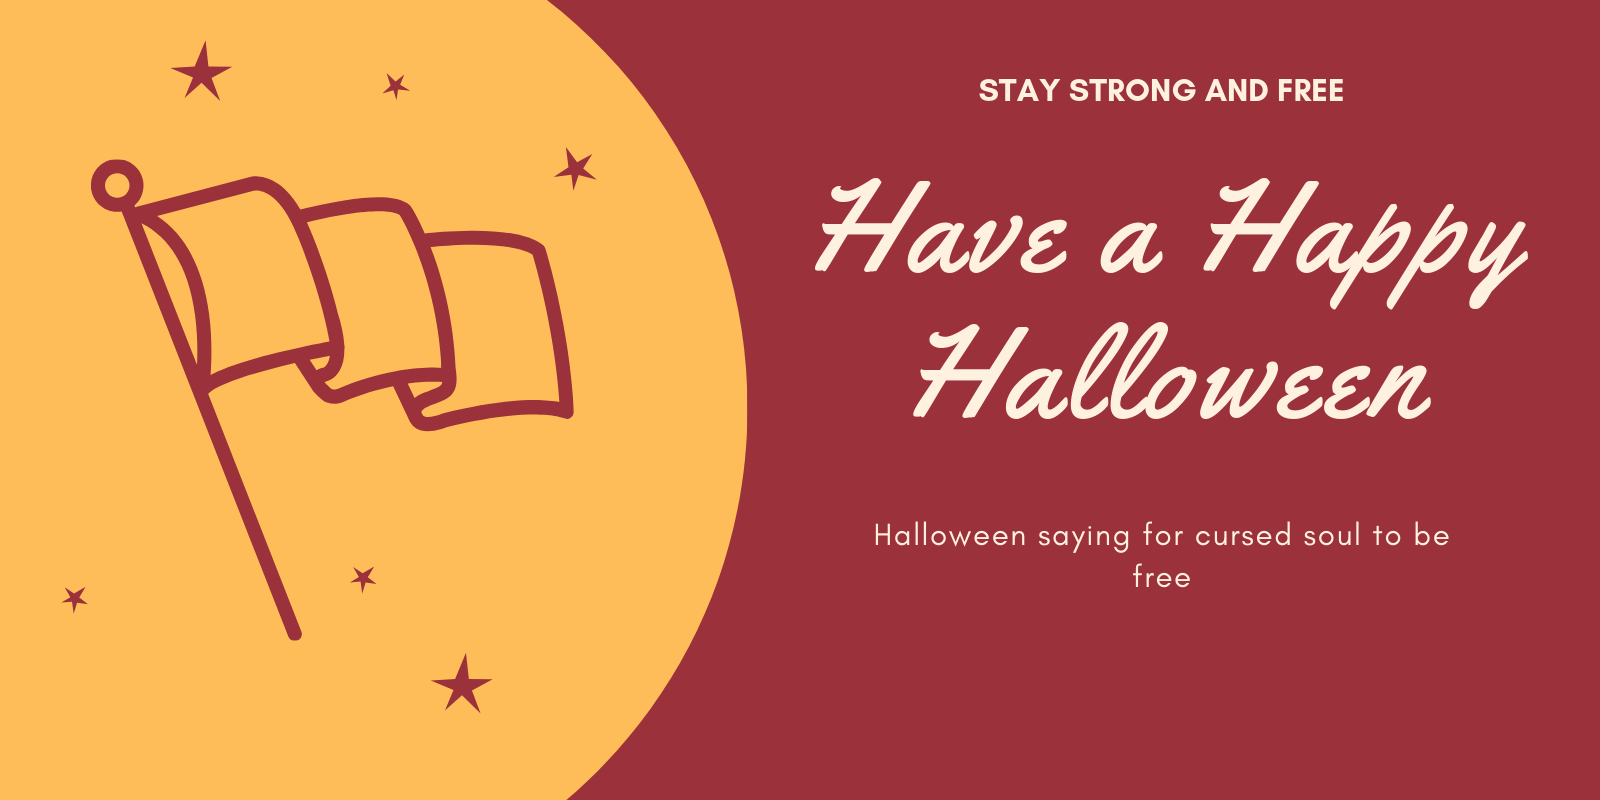 Have a Happy Halloween saying